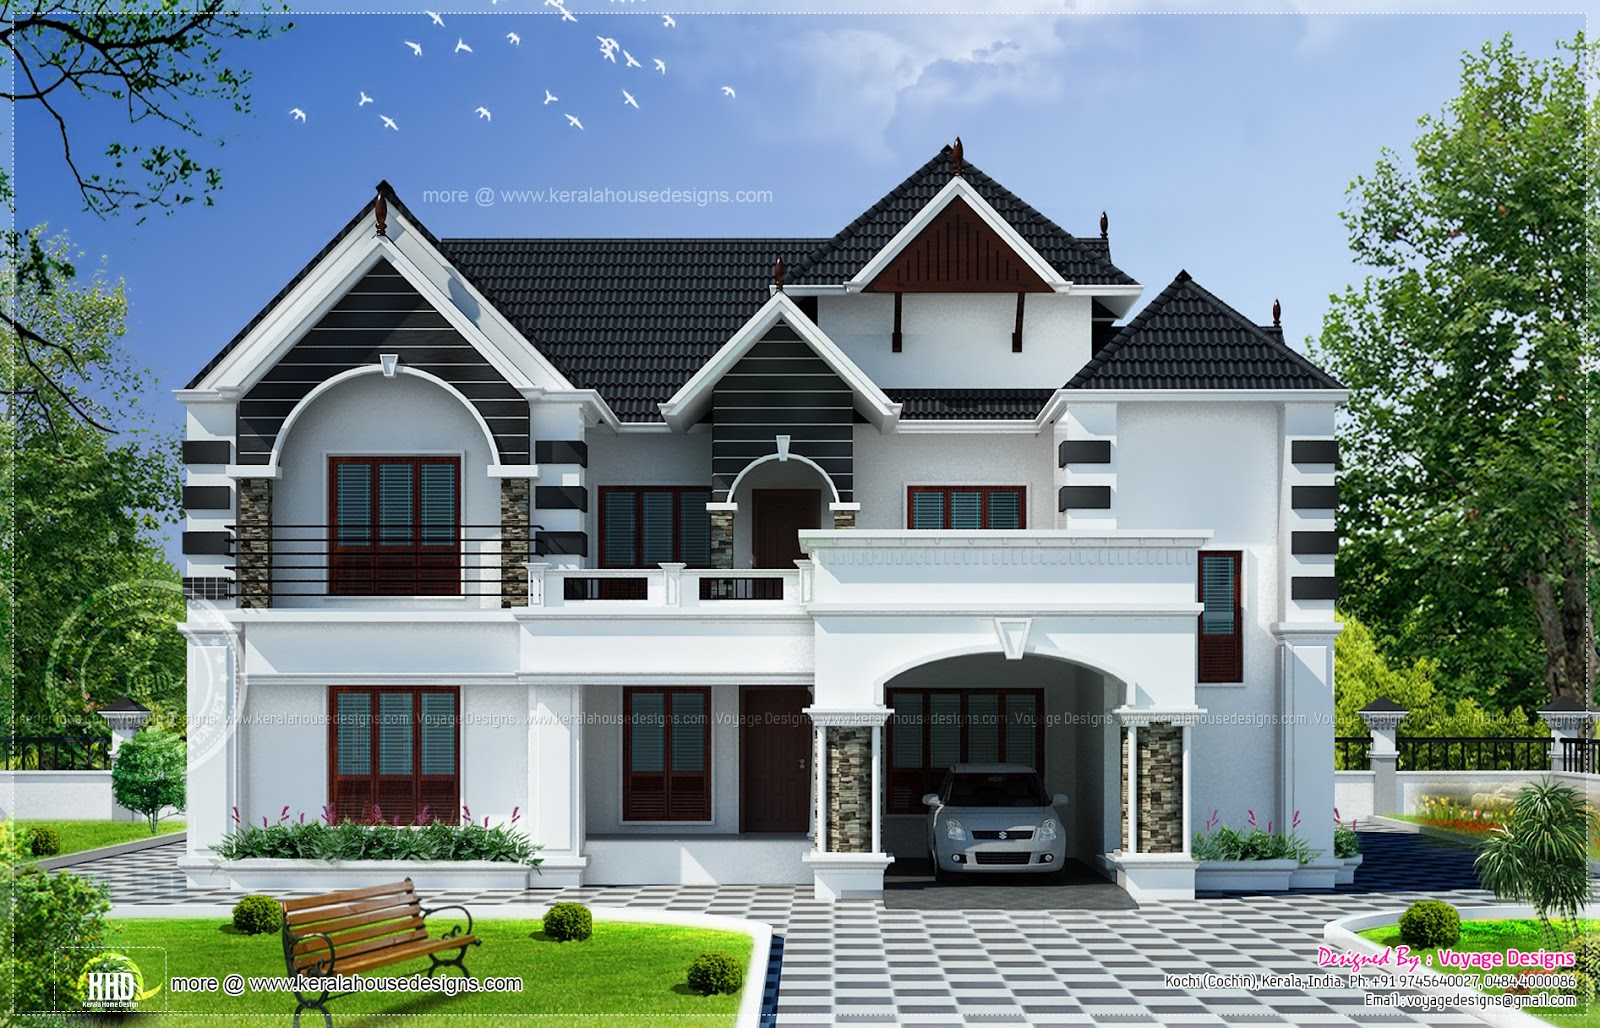 4 bedroom colonial style house kerala home design and for Home architecture styles